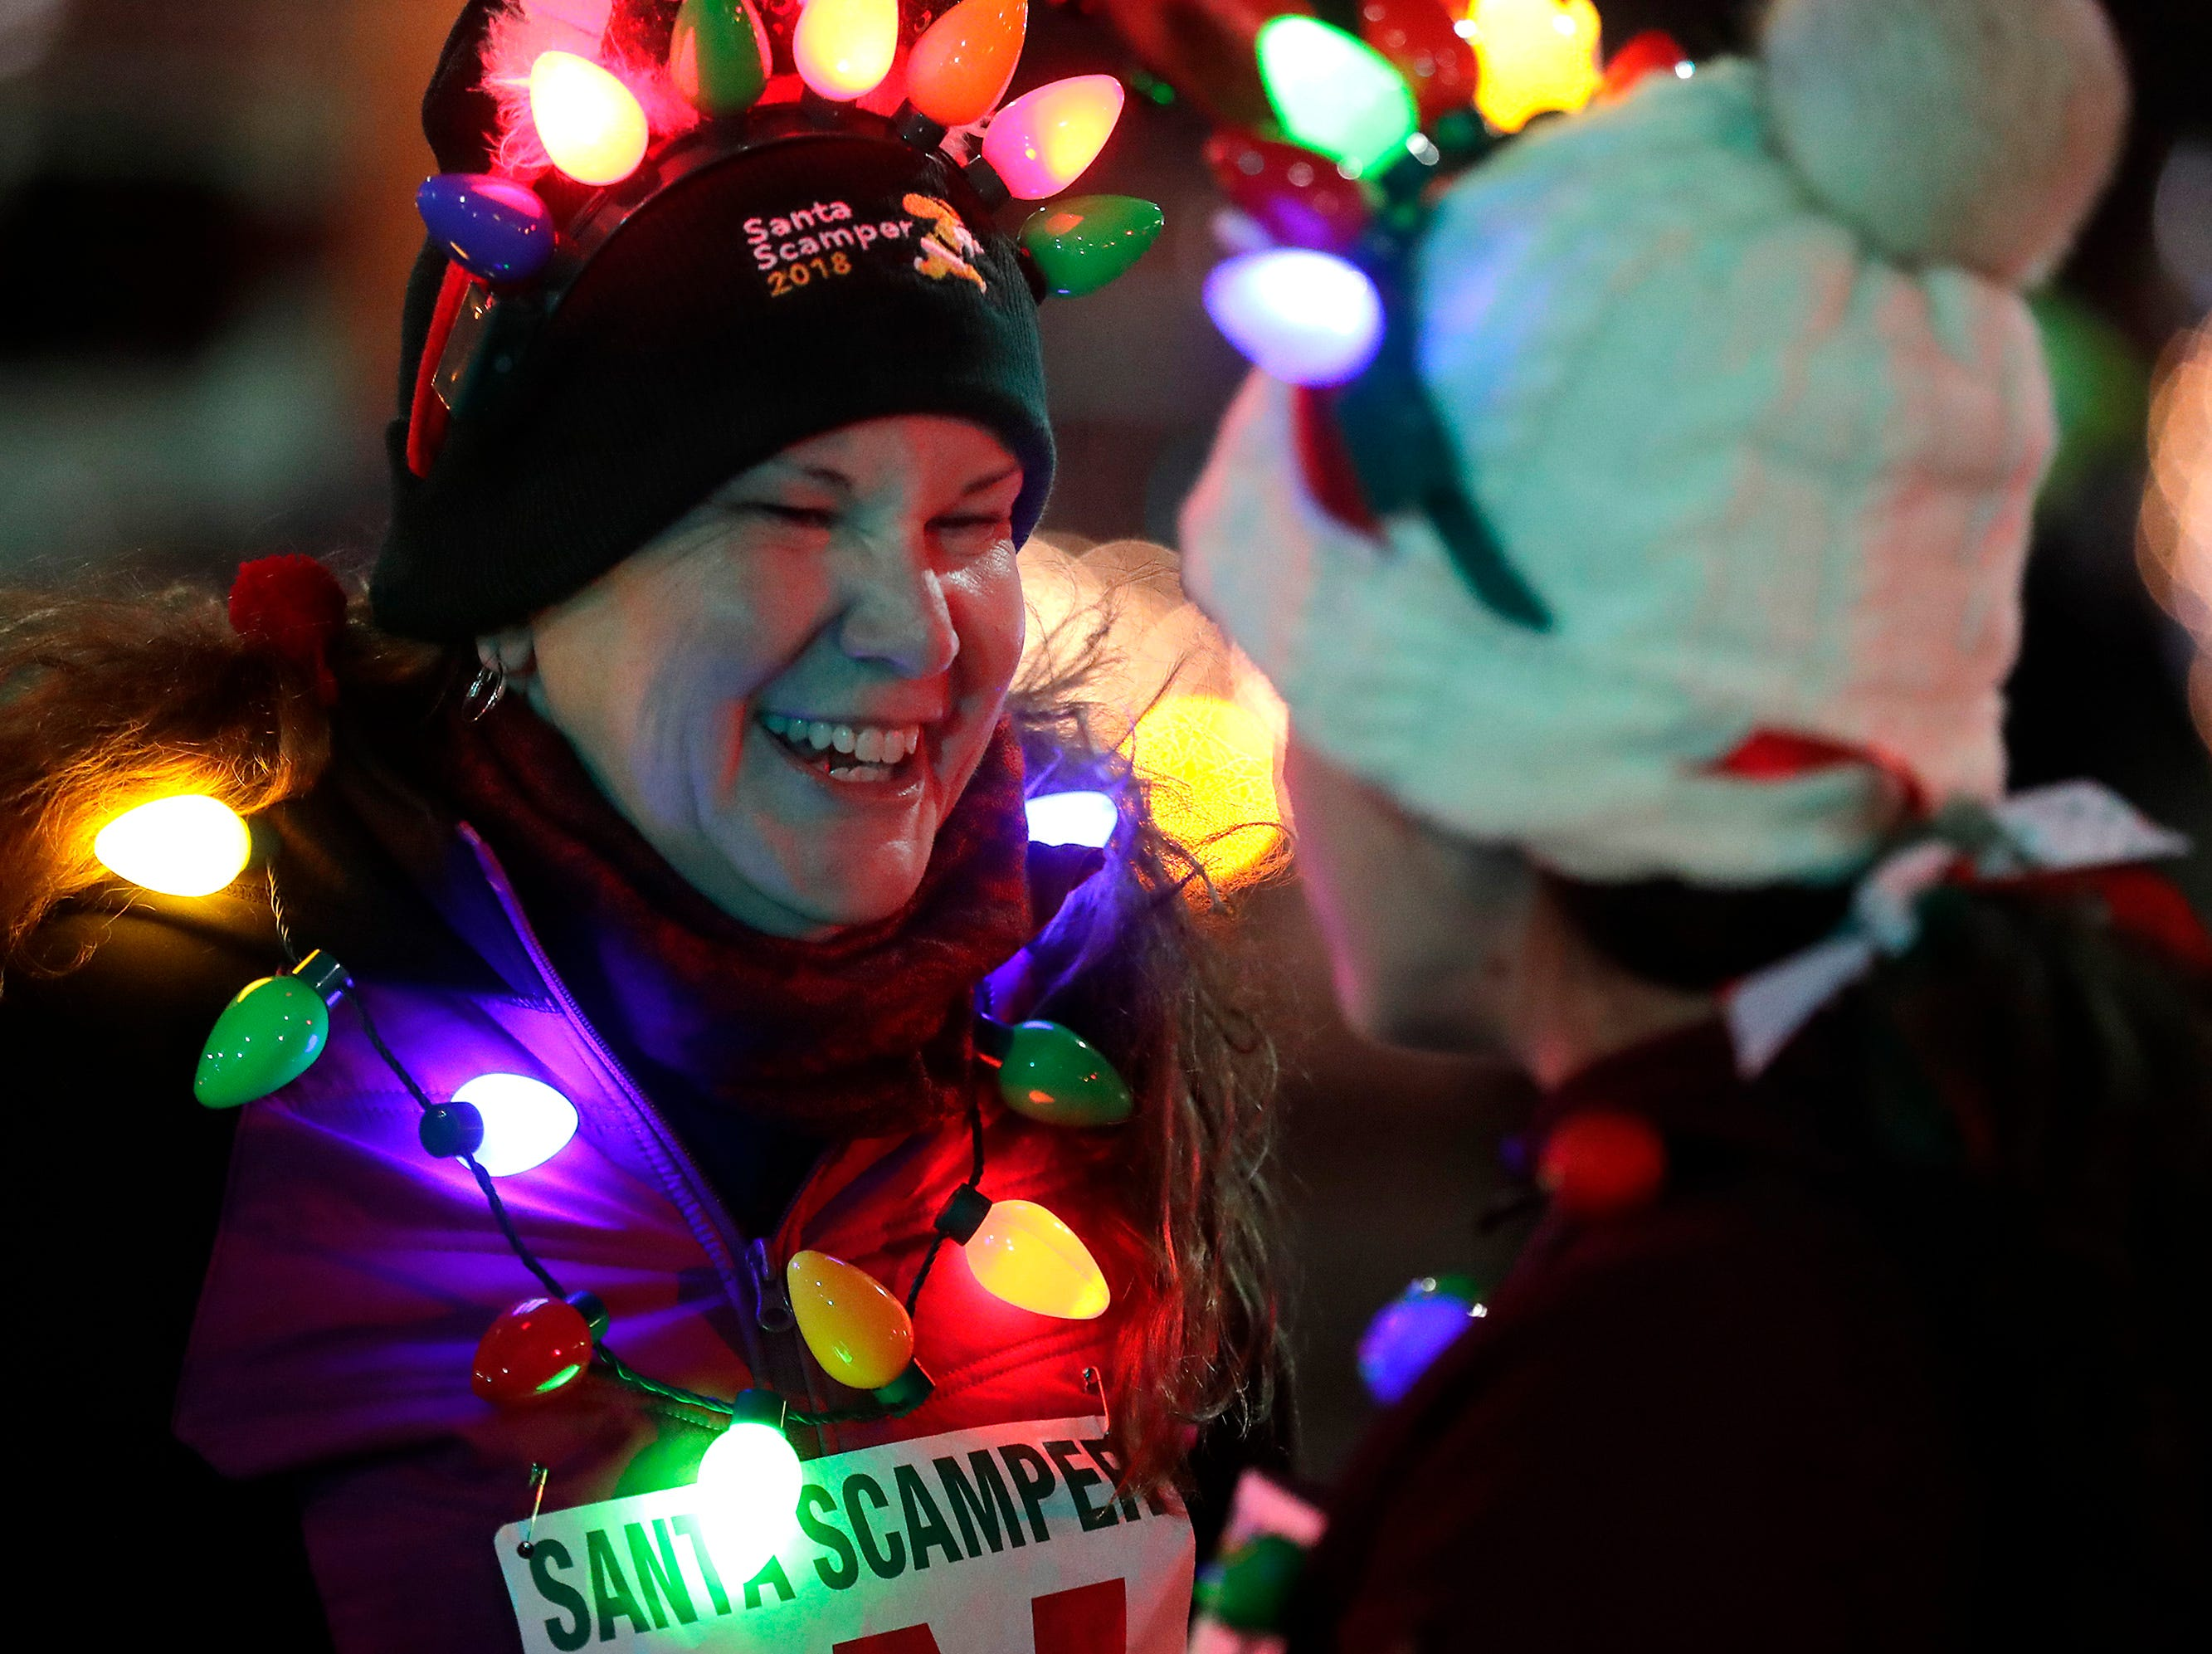 """BVarb, left, and Ellie Bigalke prepare to run the Santa Scamper before the 48th Annual Downtown Appleton Christmas Parade on Tuesday, Nov. 20, 2018 in Appleton, Wis. This year's theme was """"Home for the Holidays."""" Wm. Glasheen/USA TODAY NETWORK-Wisconsin."""